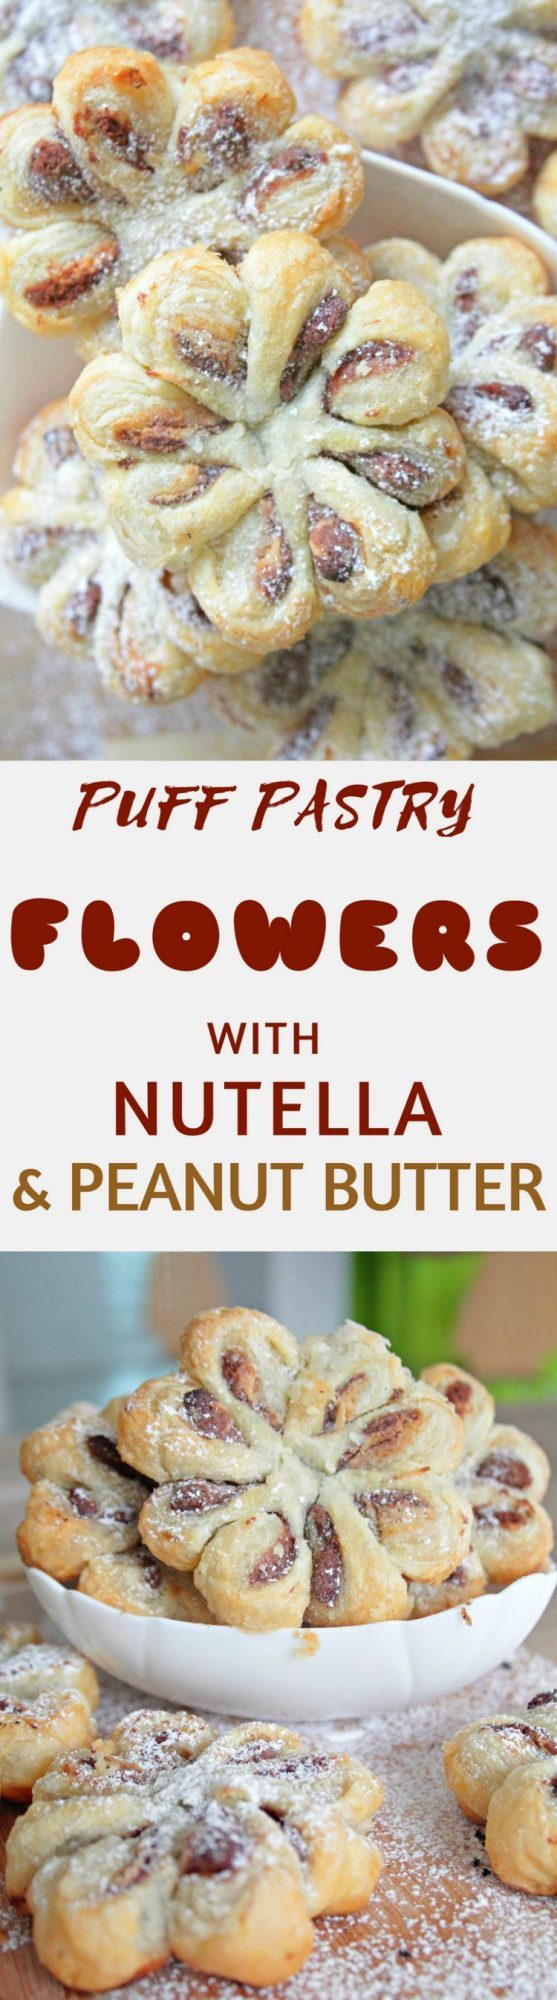 Puff pastry flowers